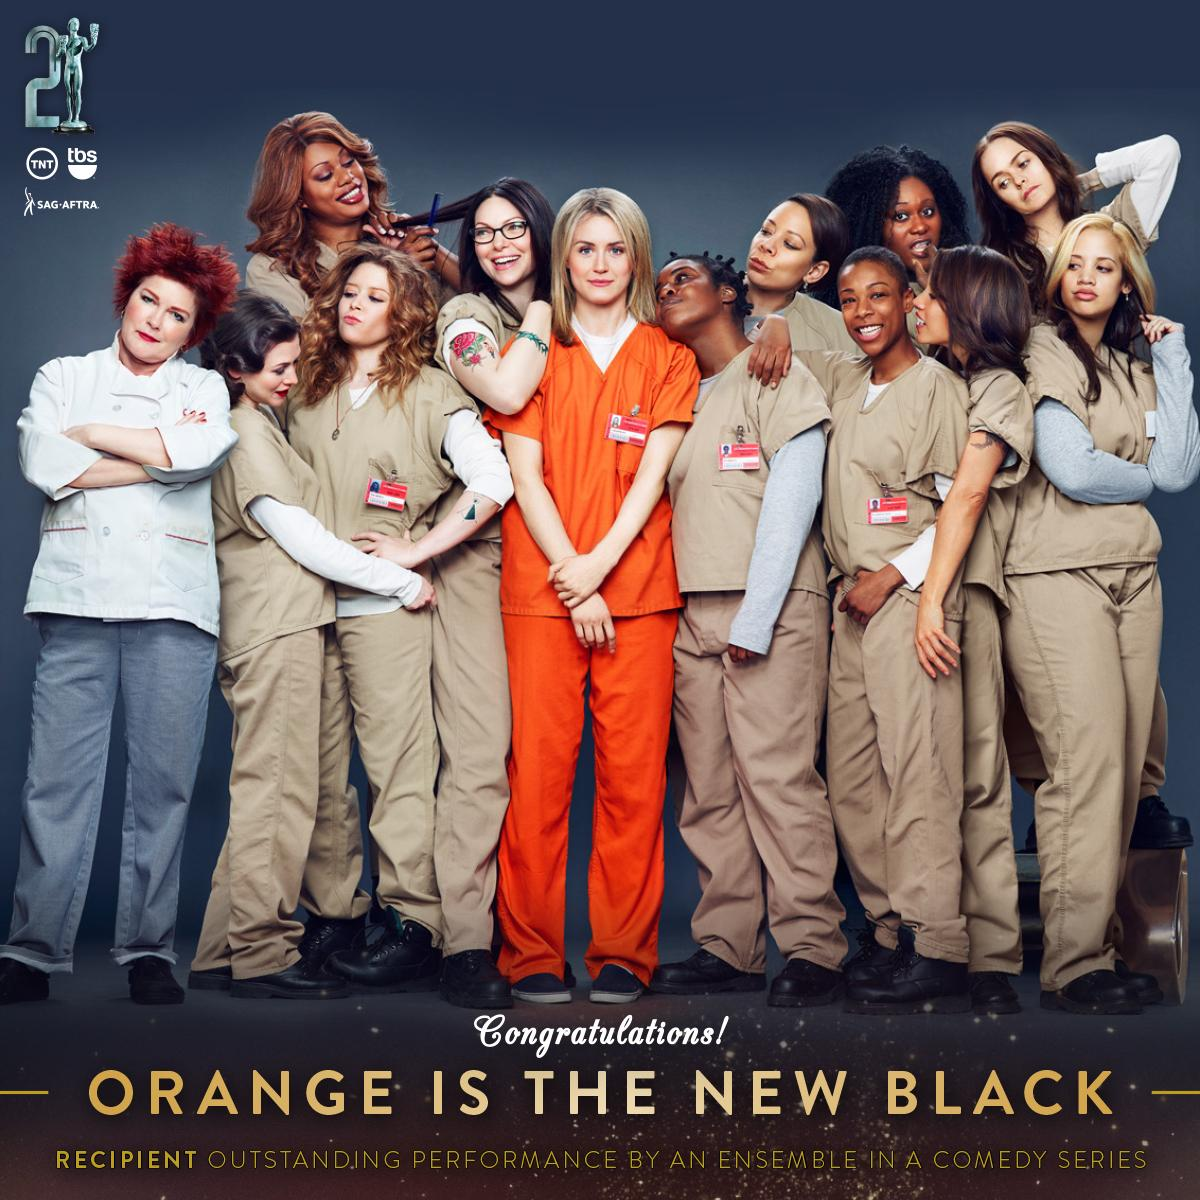 Congrats to @OITNB #SAGawards recipient for Outstanding Performance by an Ensemble in a Comedy Series! #OITNB http://t.co/gZDwuAFwAX